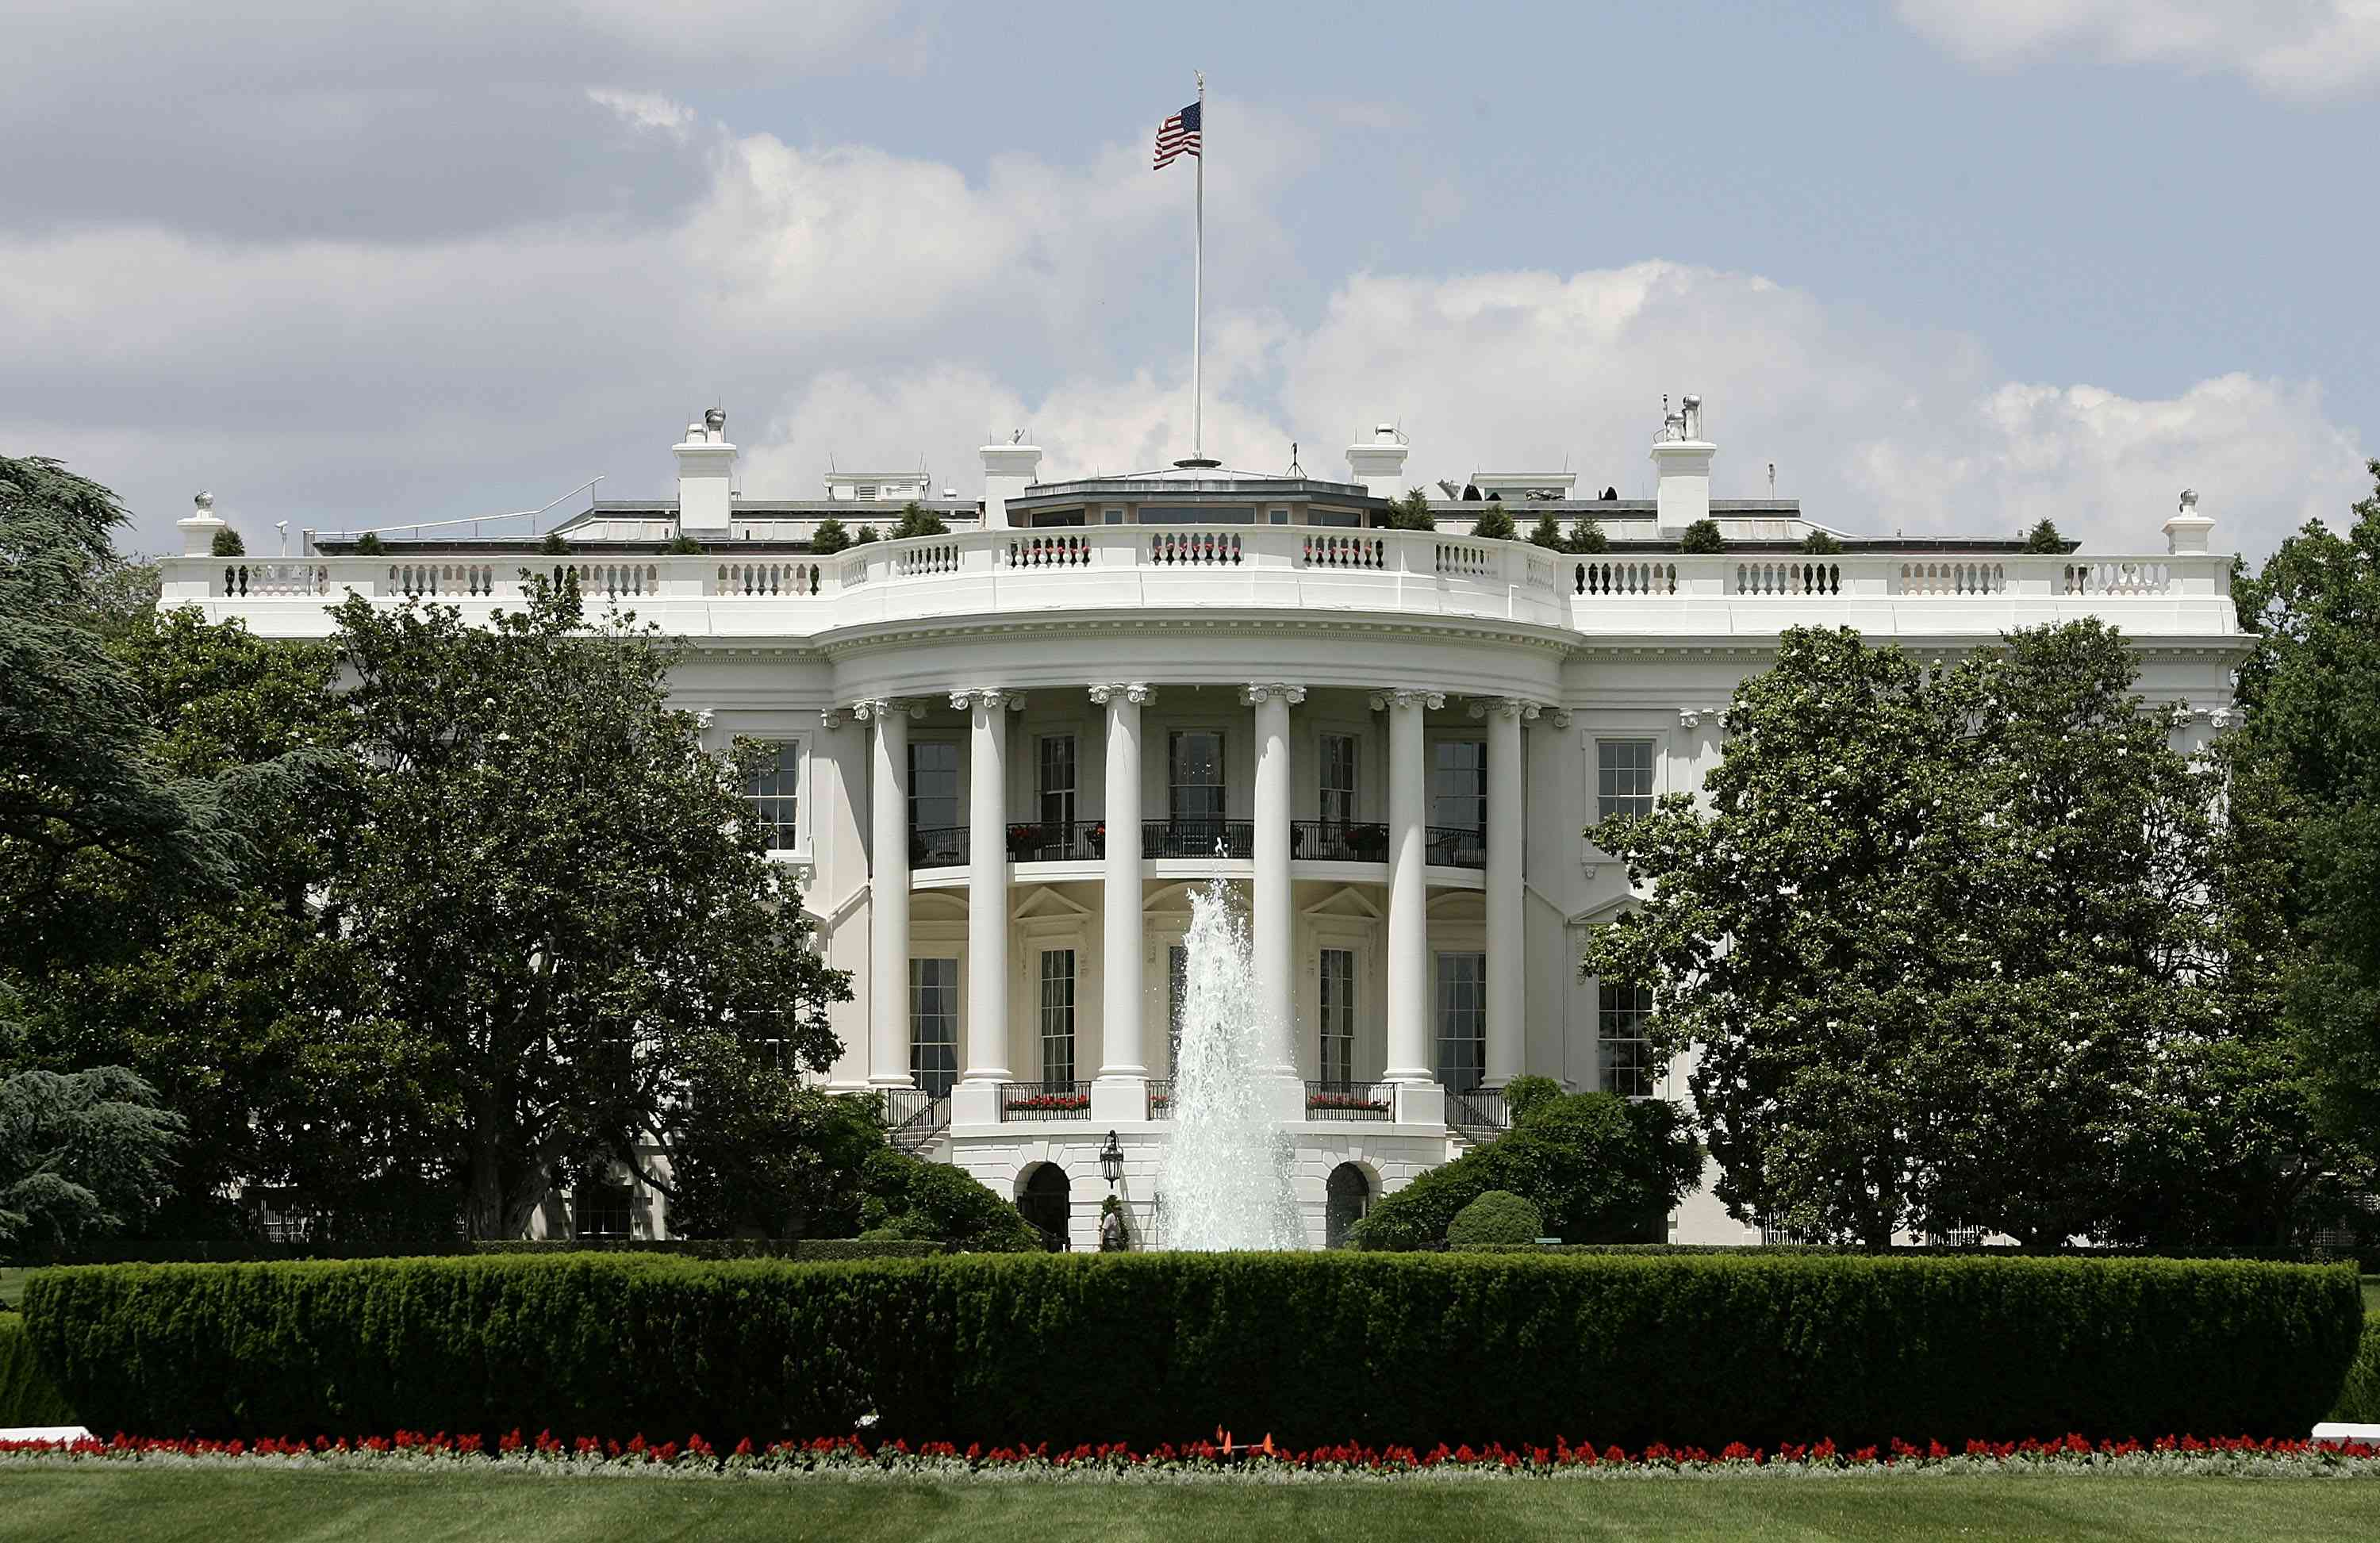 The White House became an example of the federalist style